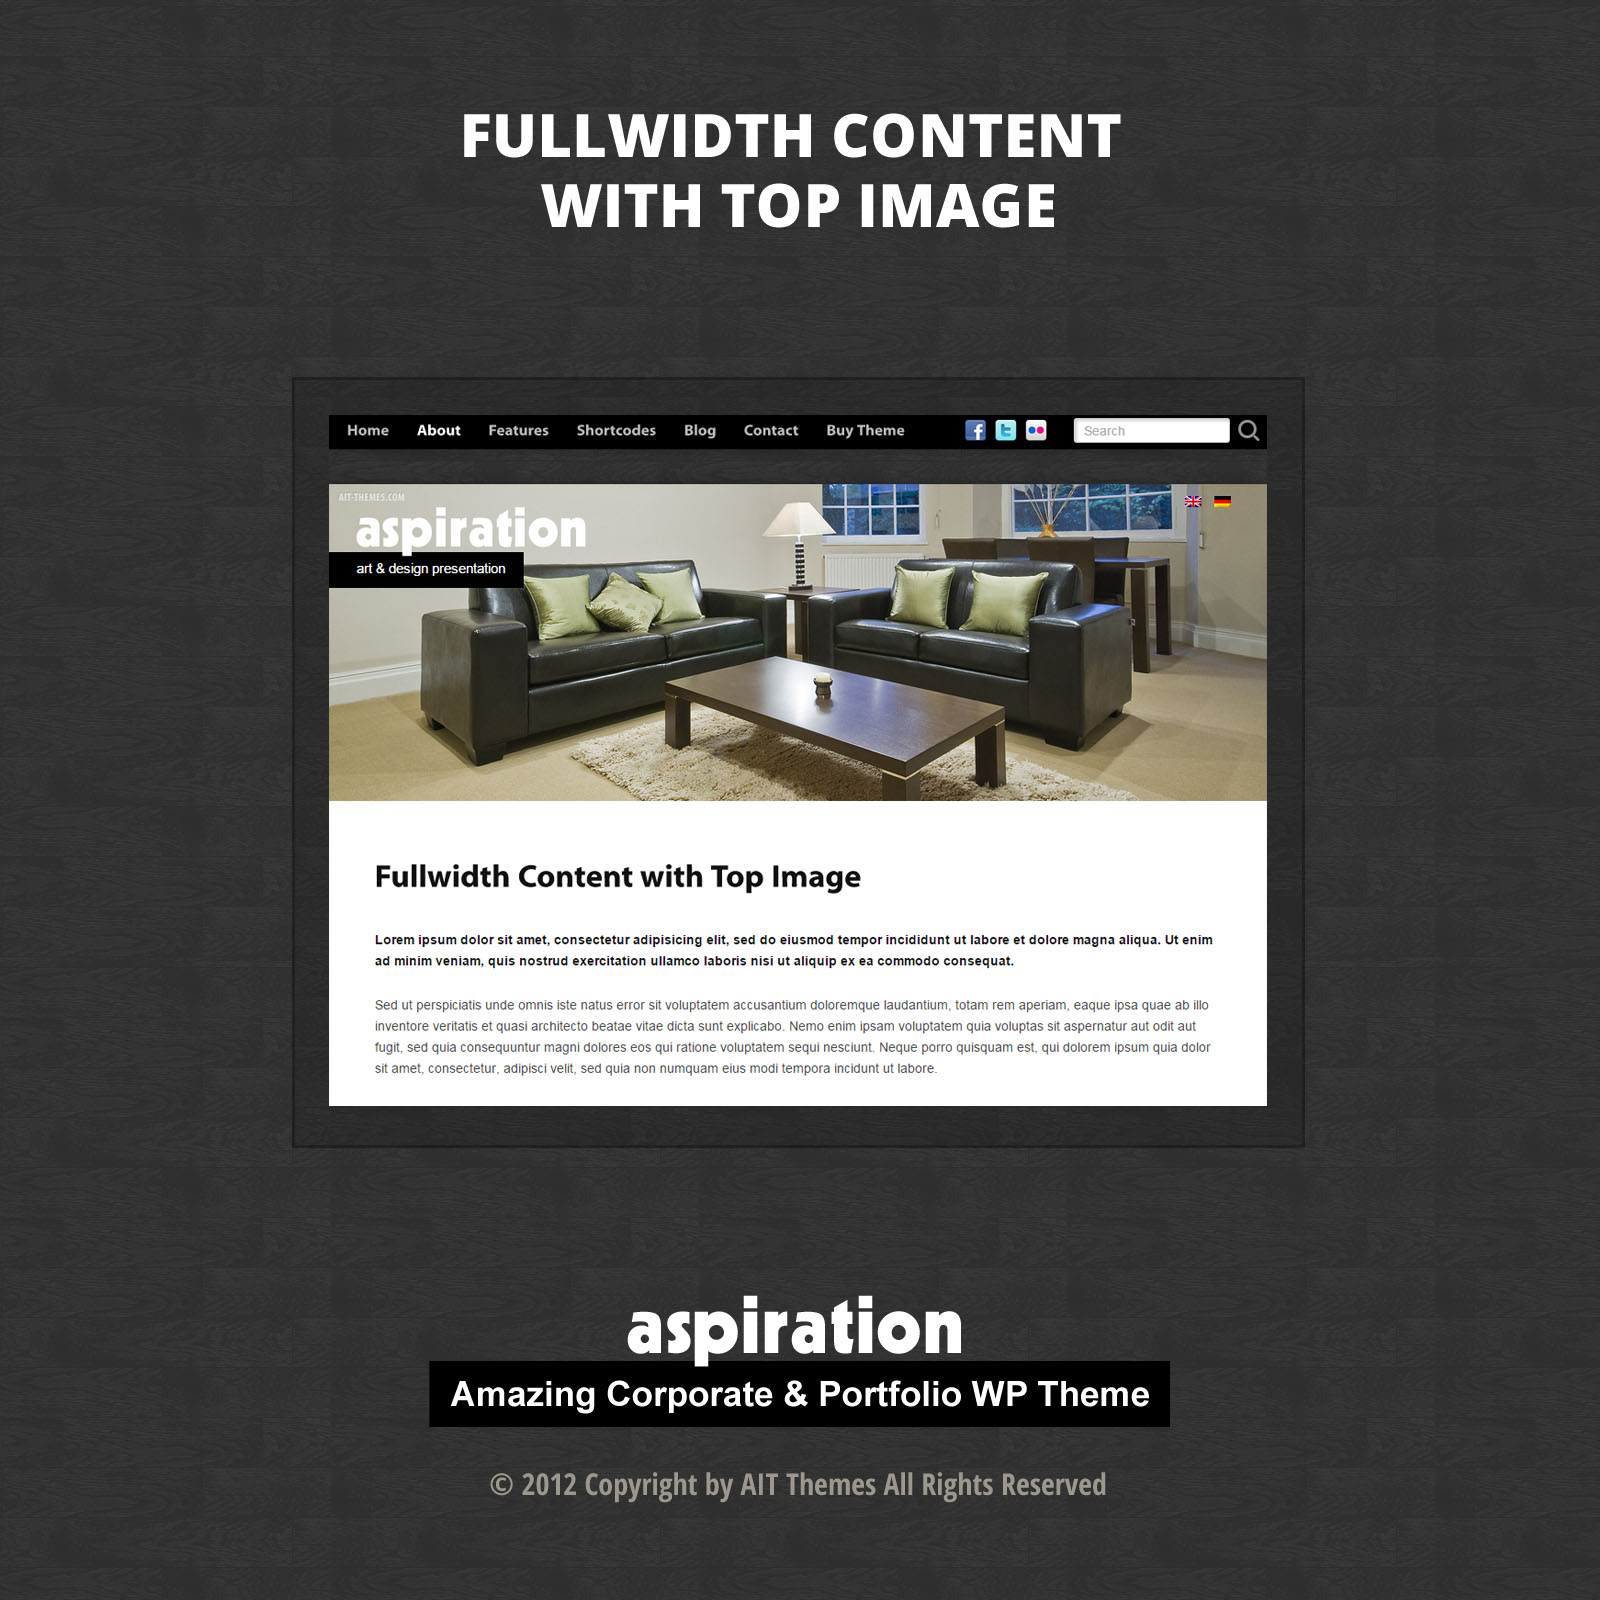 Fullwidth Content with Top Image